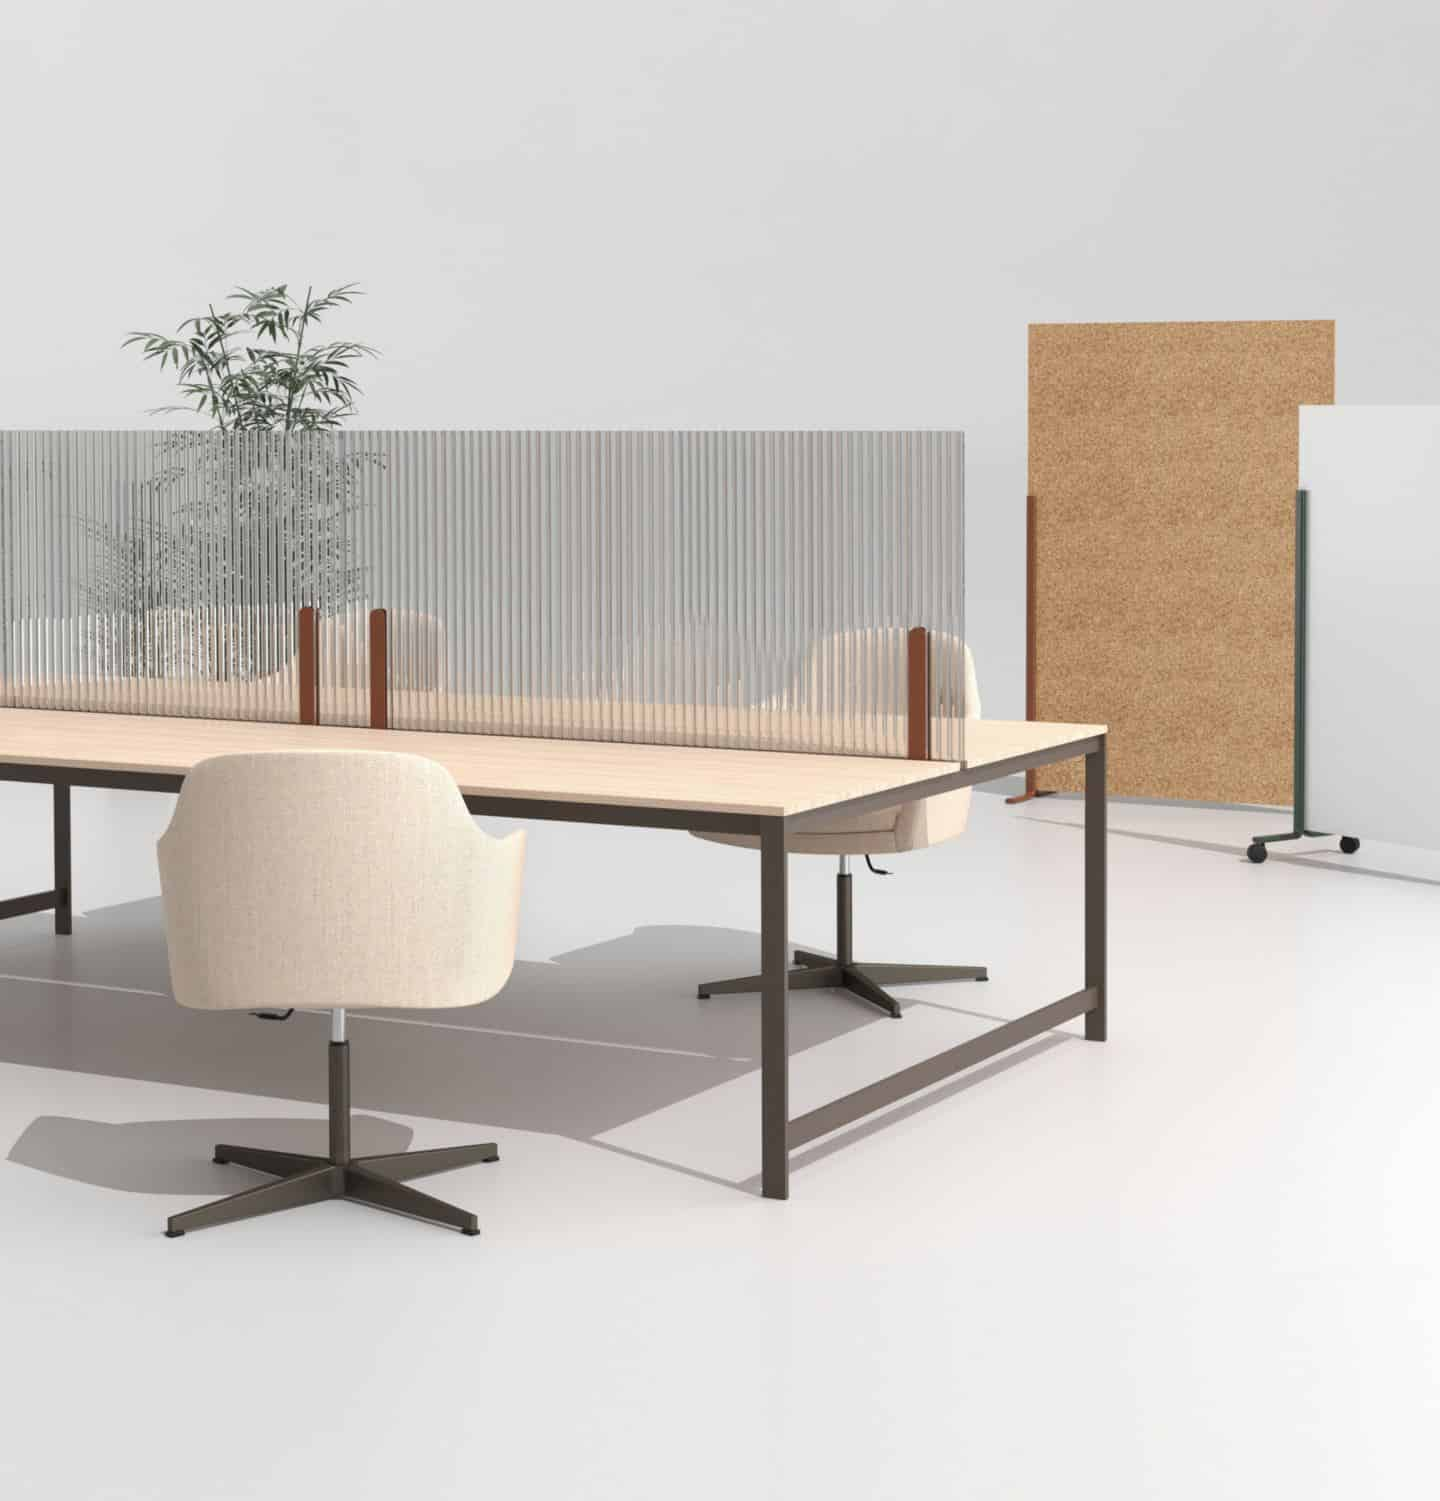 Hinoki Protective Office Screens for the post-pandemic workplace by Manerba Spa